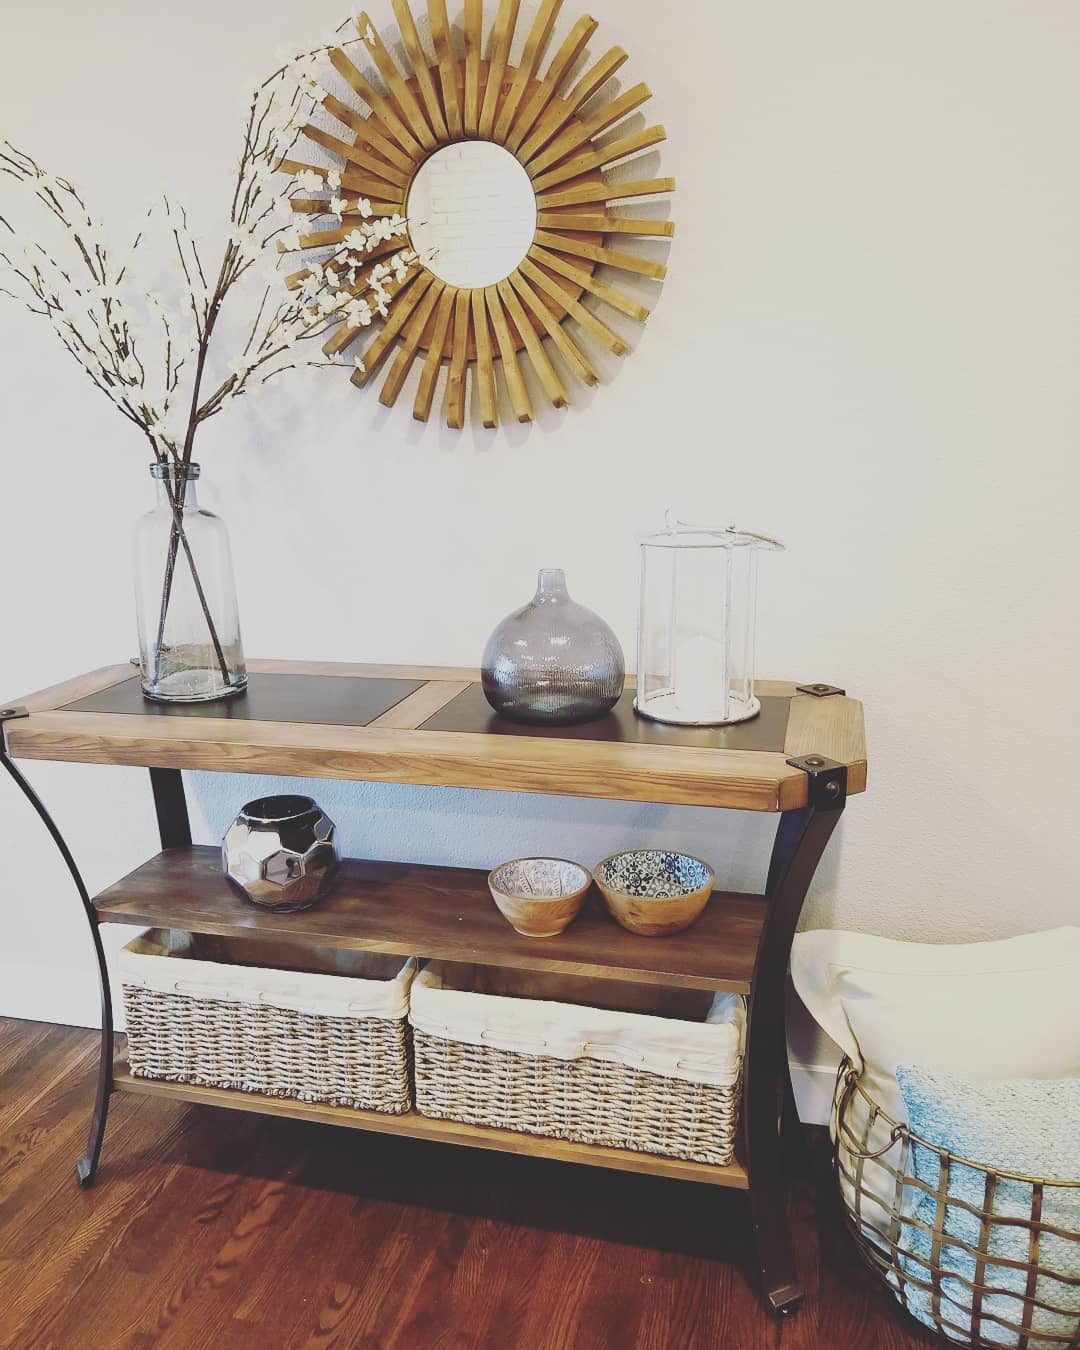 Staging with vignettes